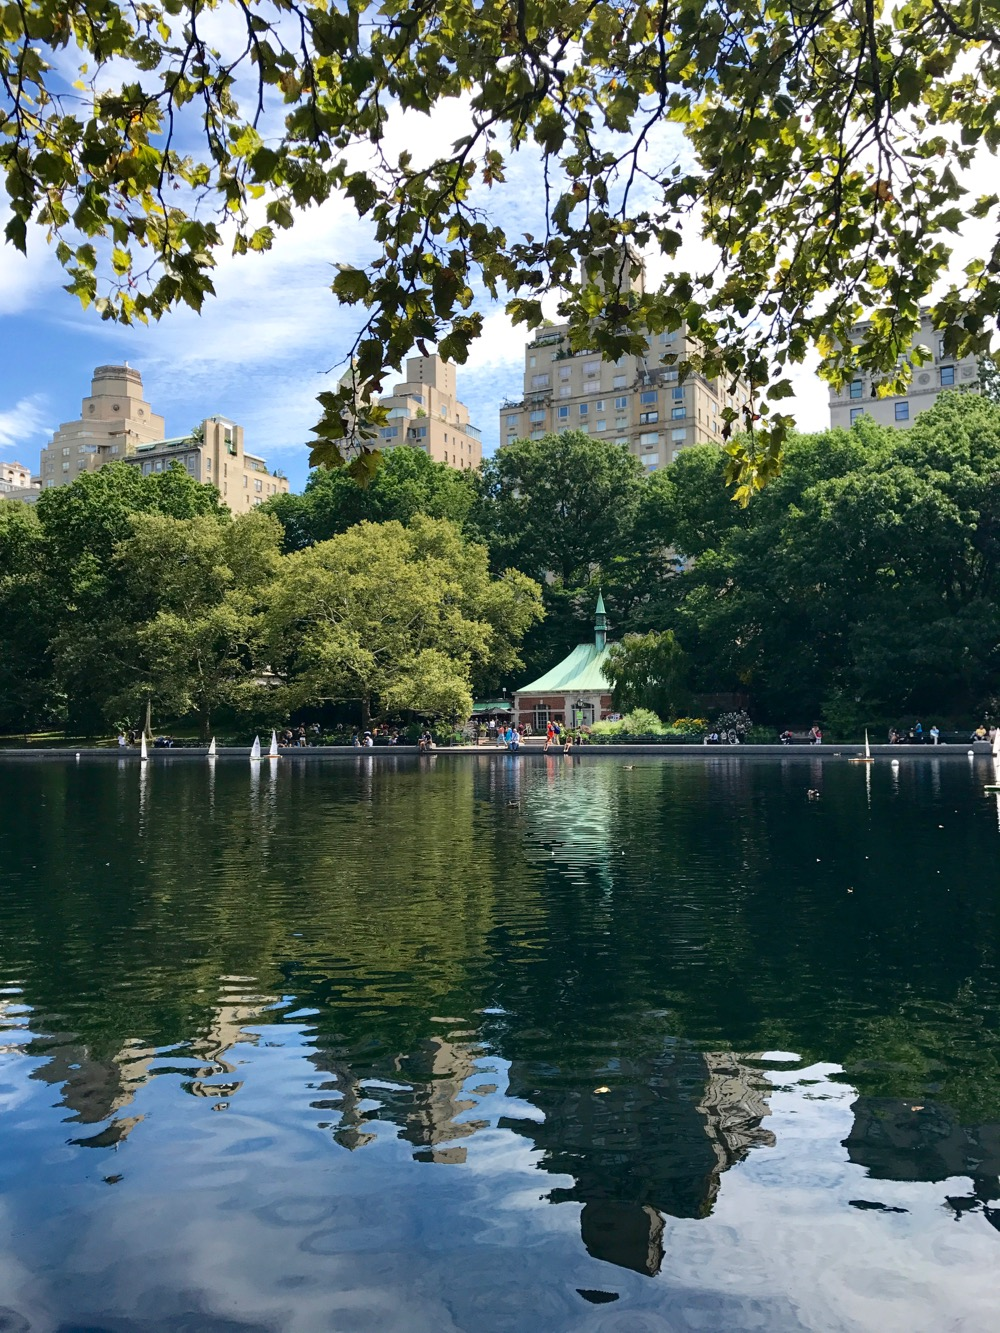 skyline reflected on Conservatory Water